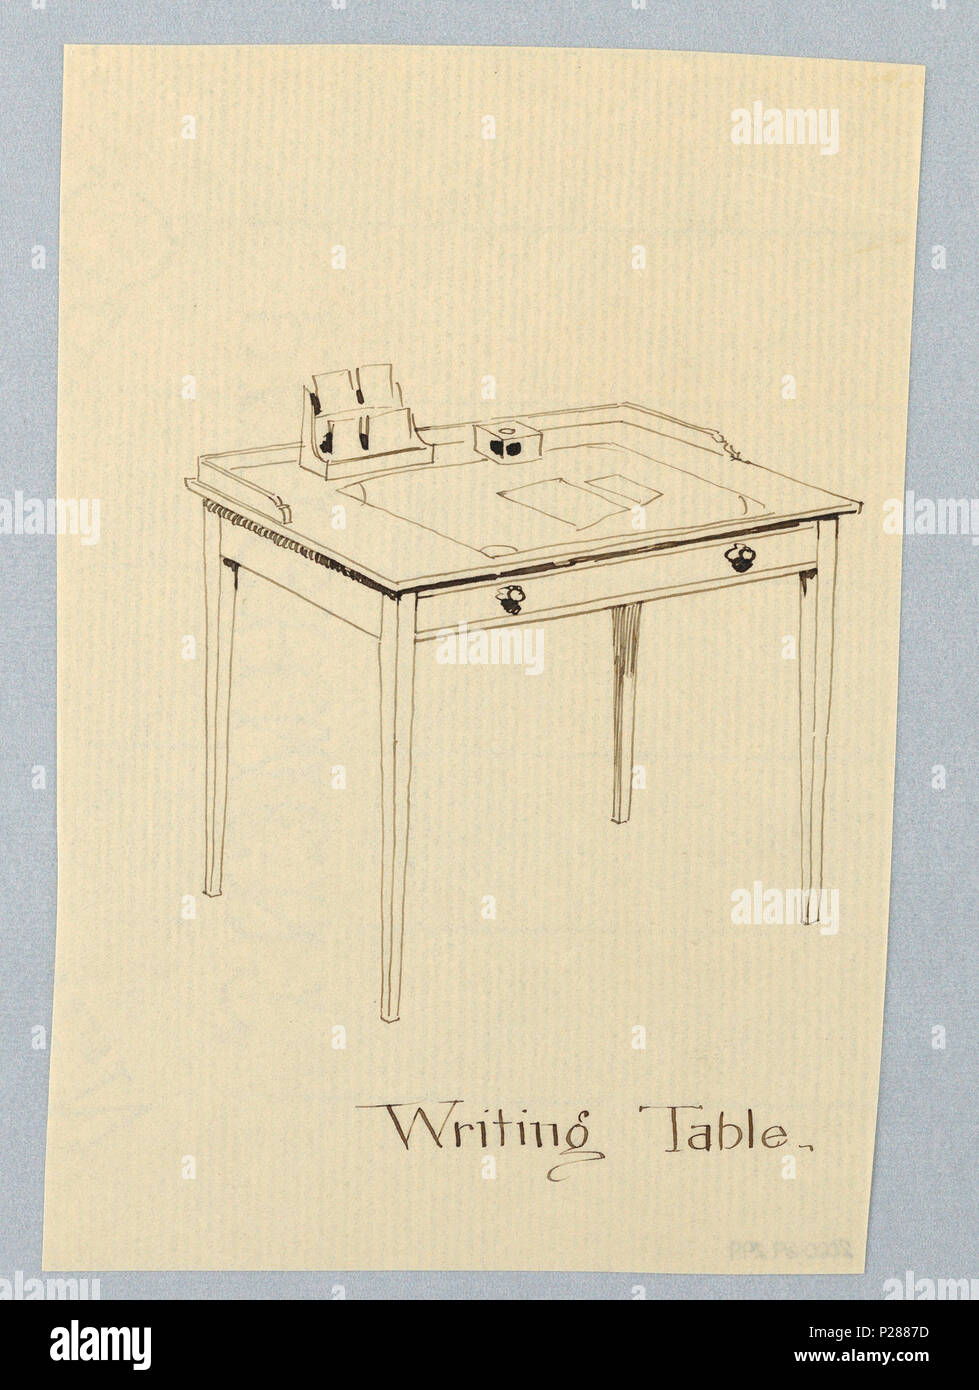 103 Drawing, Design for Simple Rectangular Writing Table